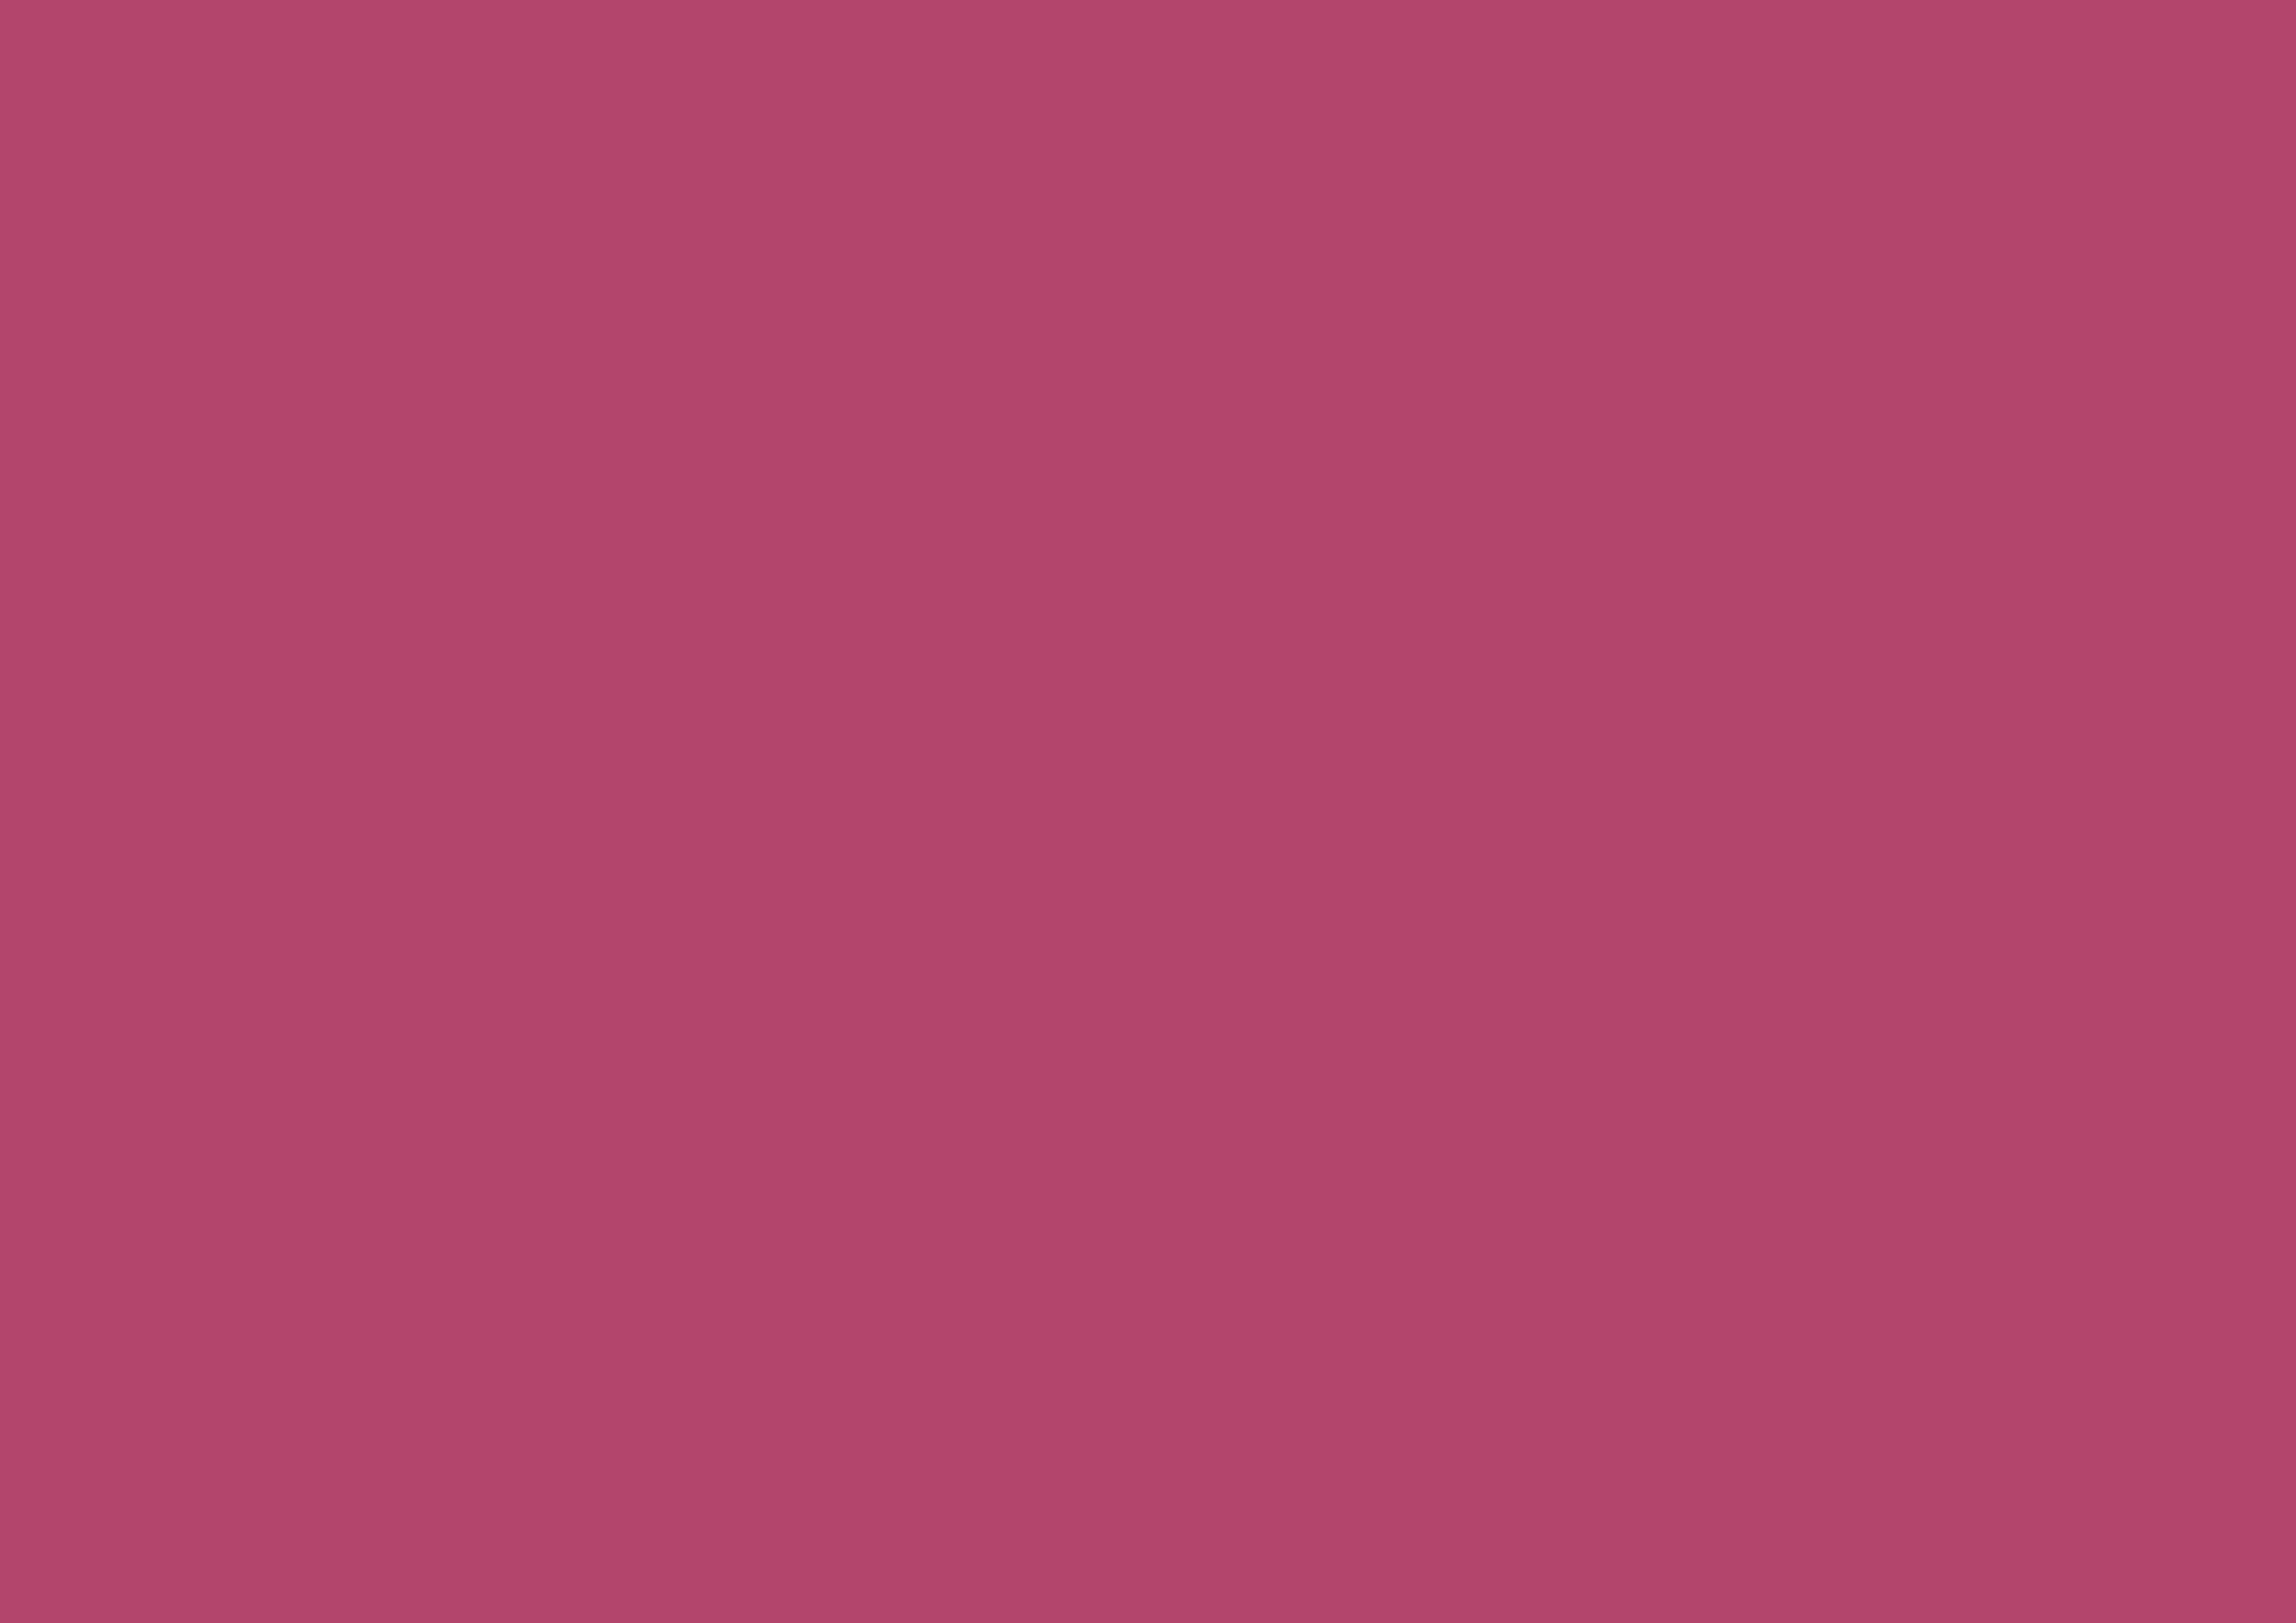 3508x2480 Raspberry Rose Solid Color Background